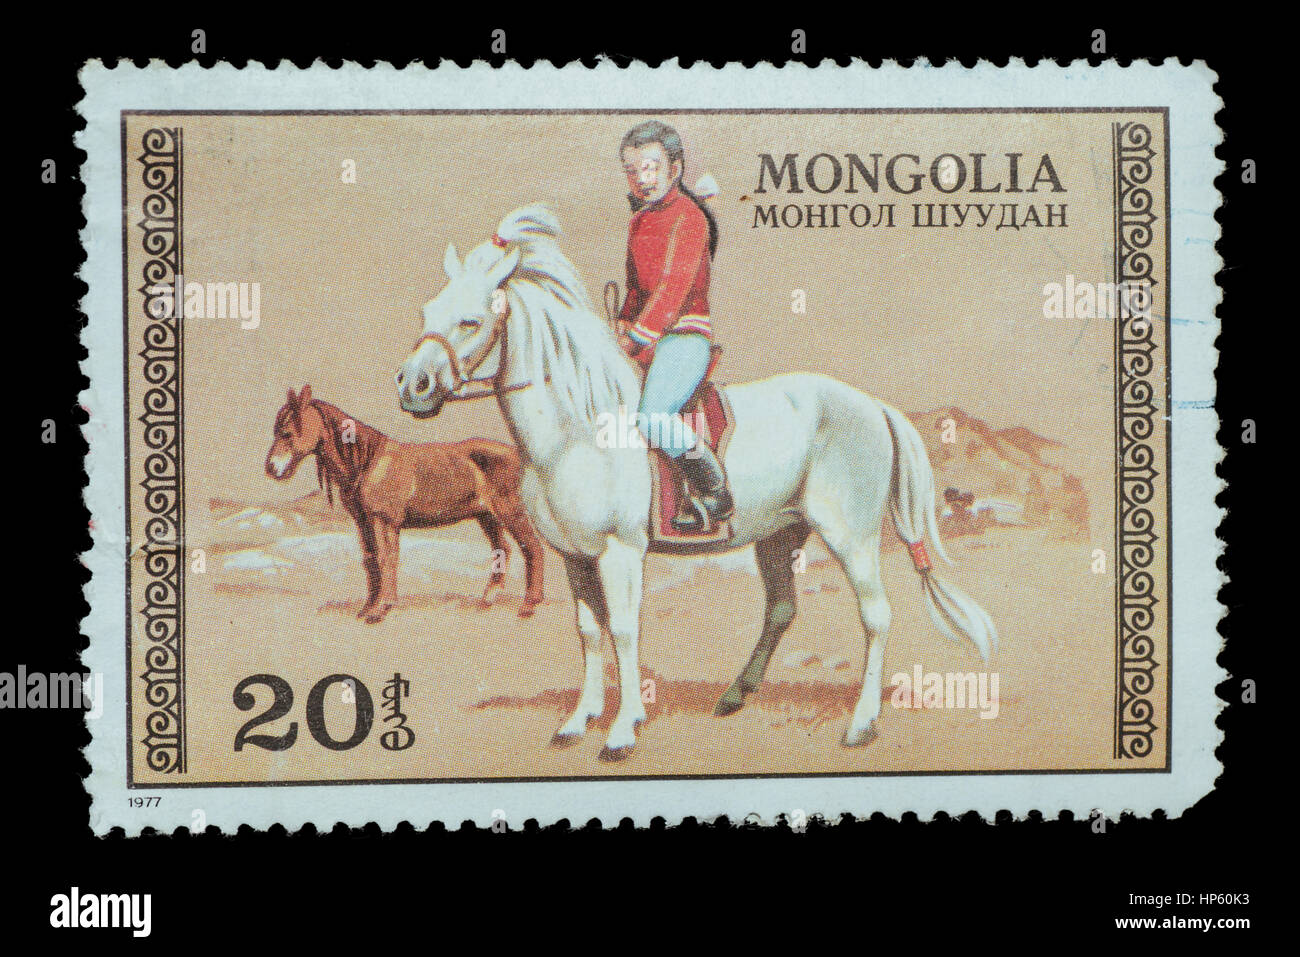 Postage Stamp isolated - Stock Image